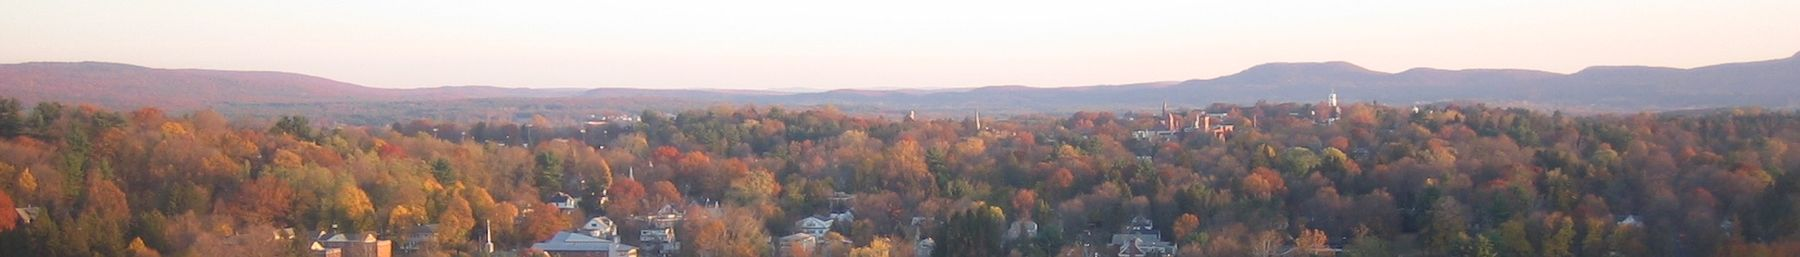 WV banner Hampshire county Fall foilage in Amherst.jpg